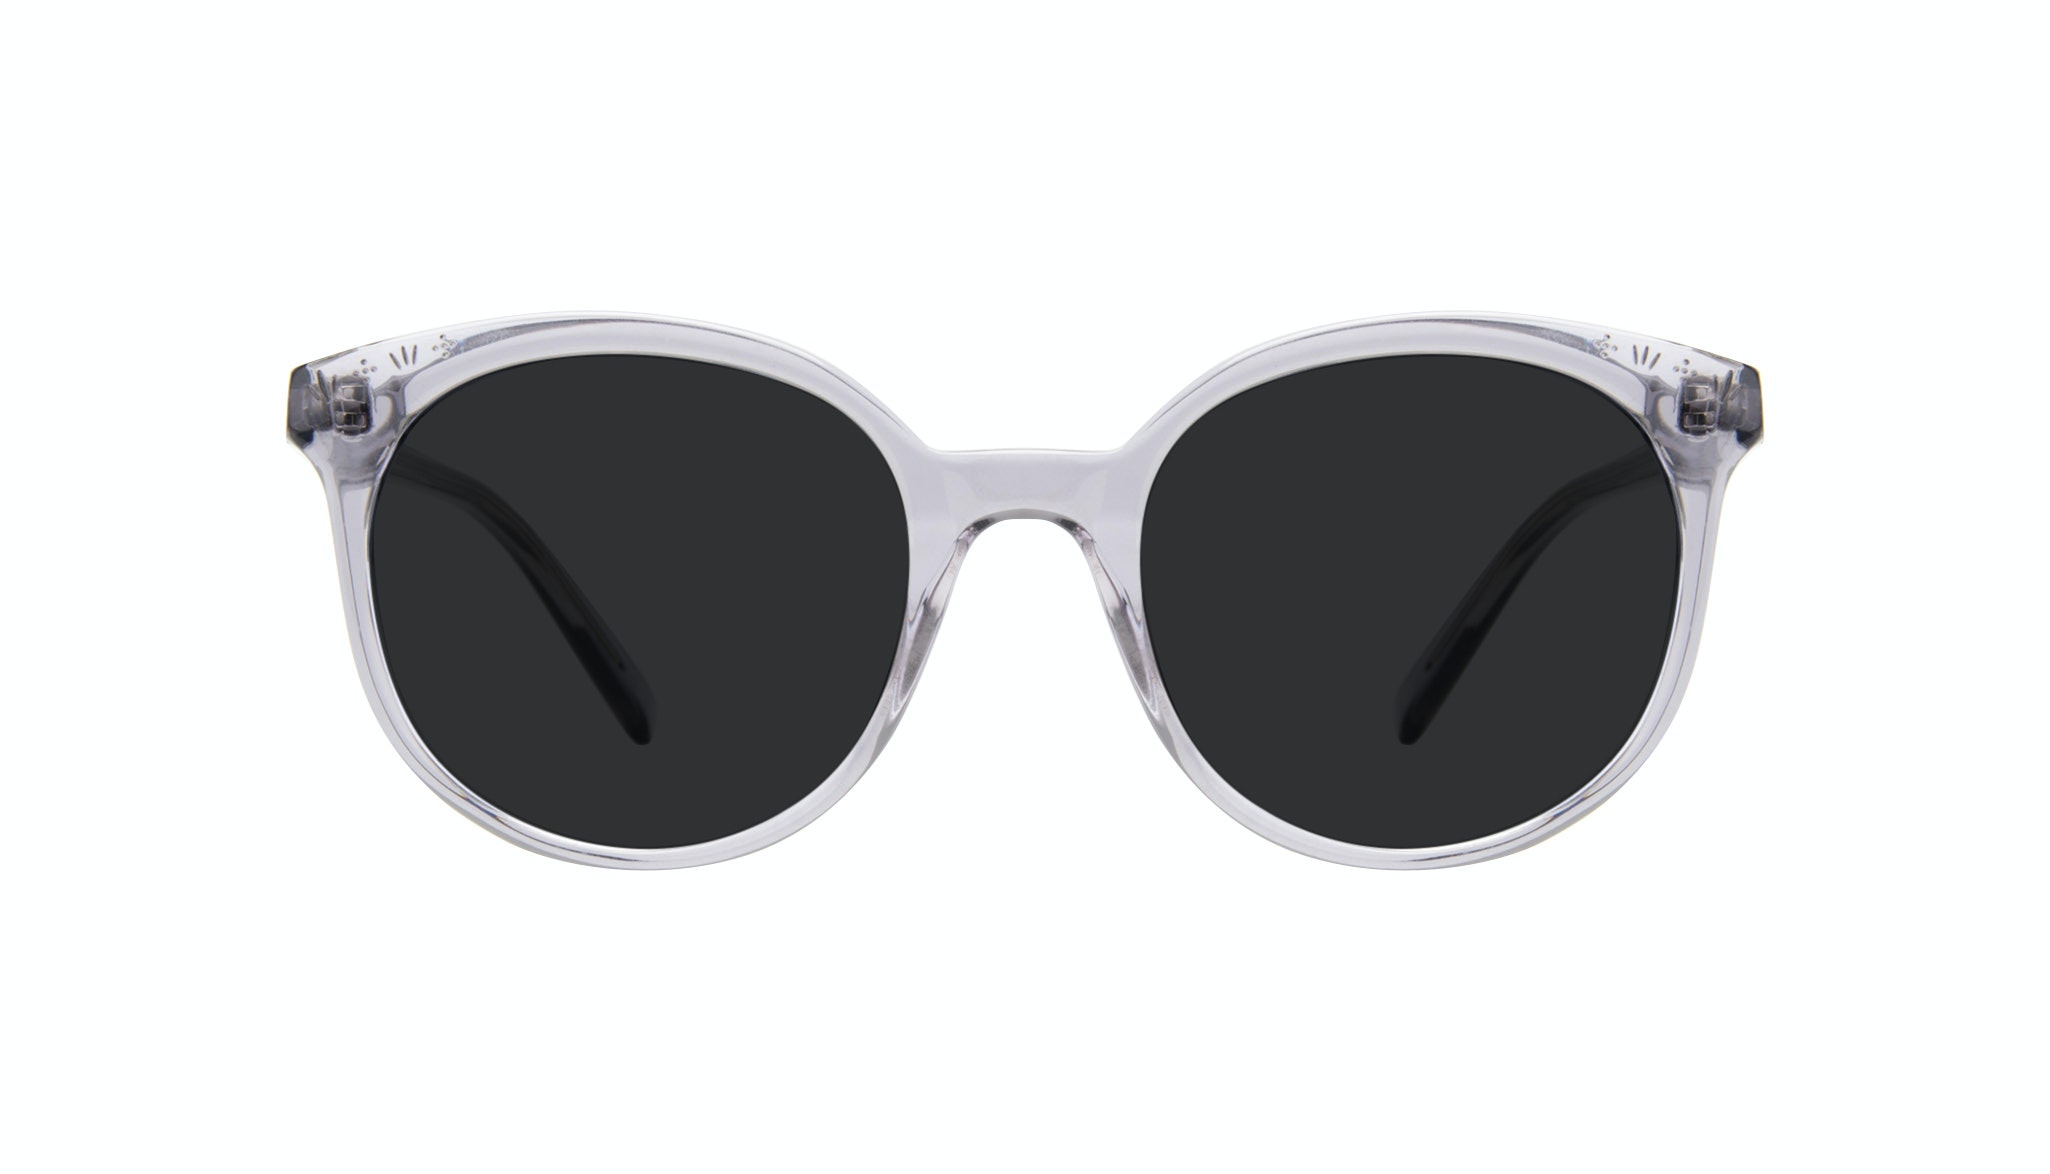 Affordable Fashion Glasses Round Sunglasses Women Must Grey Front